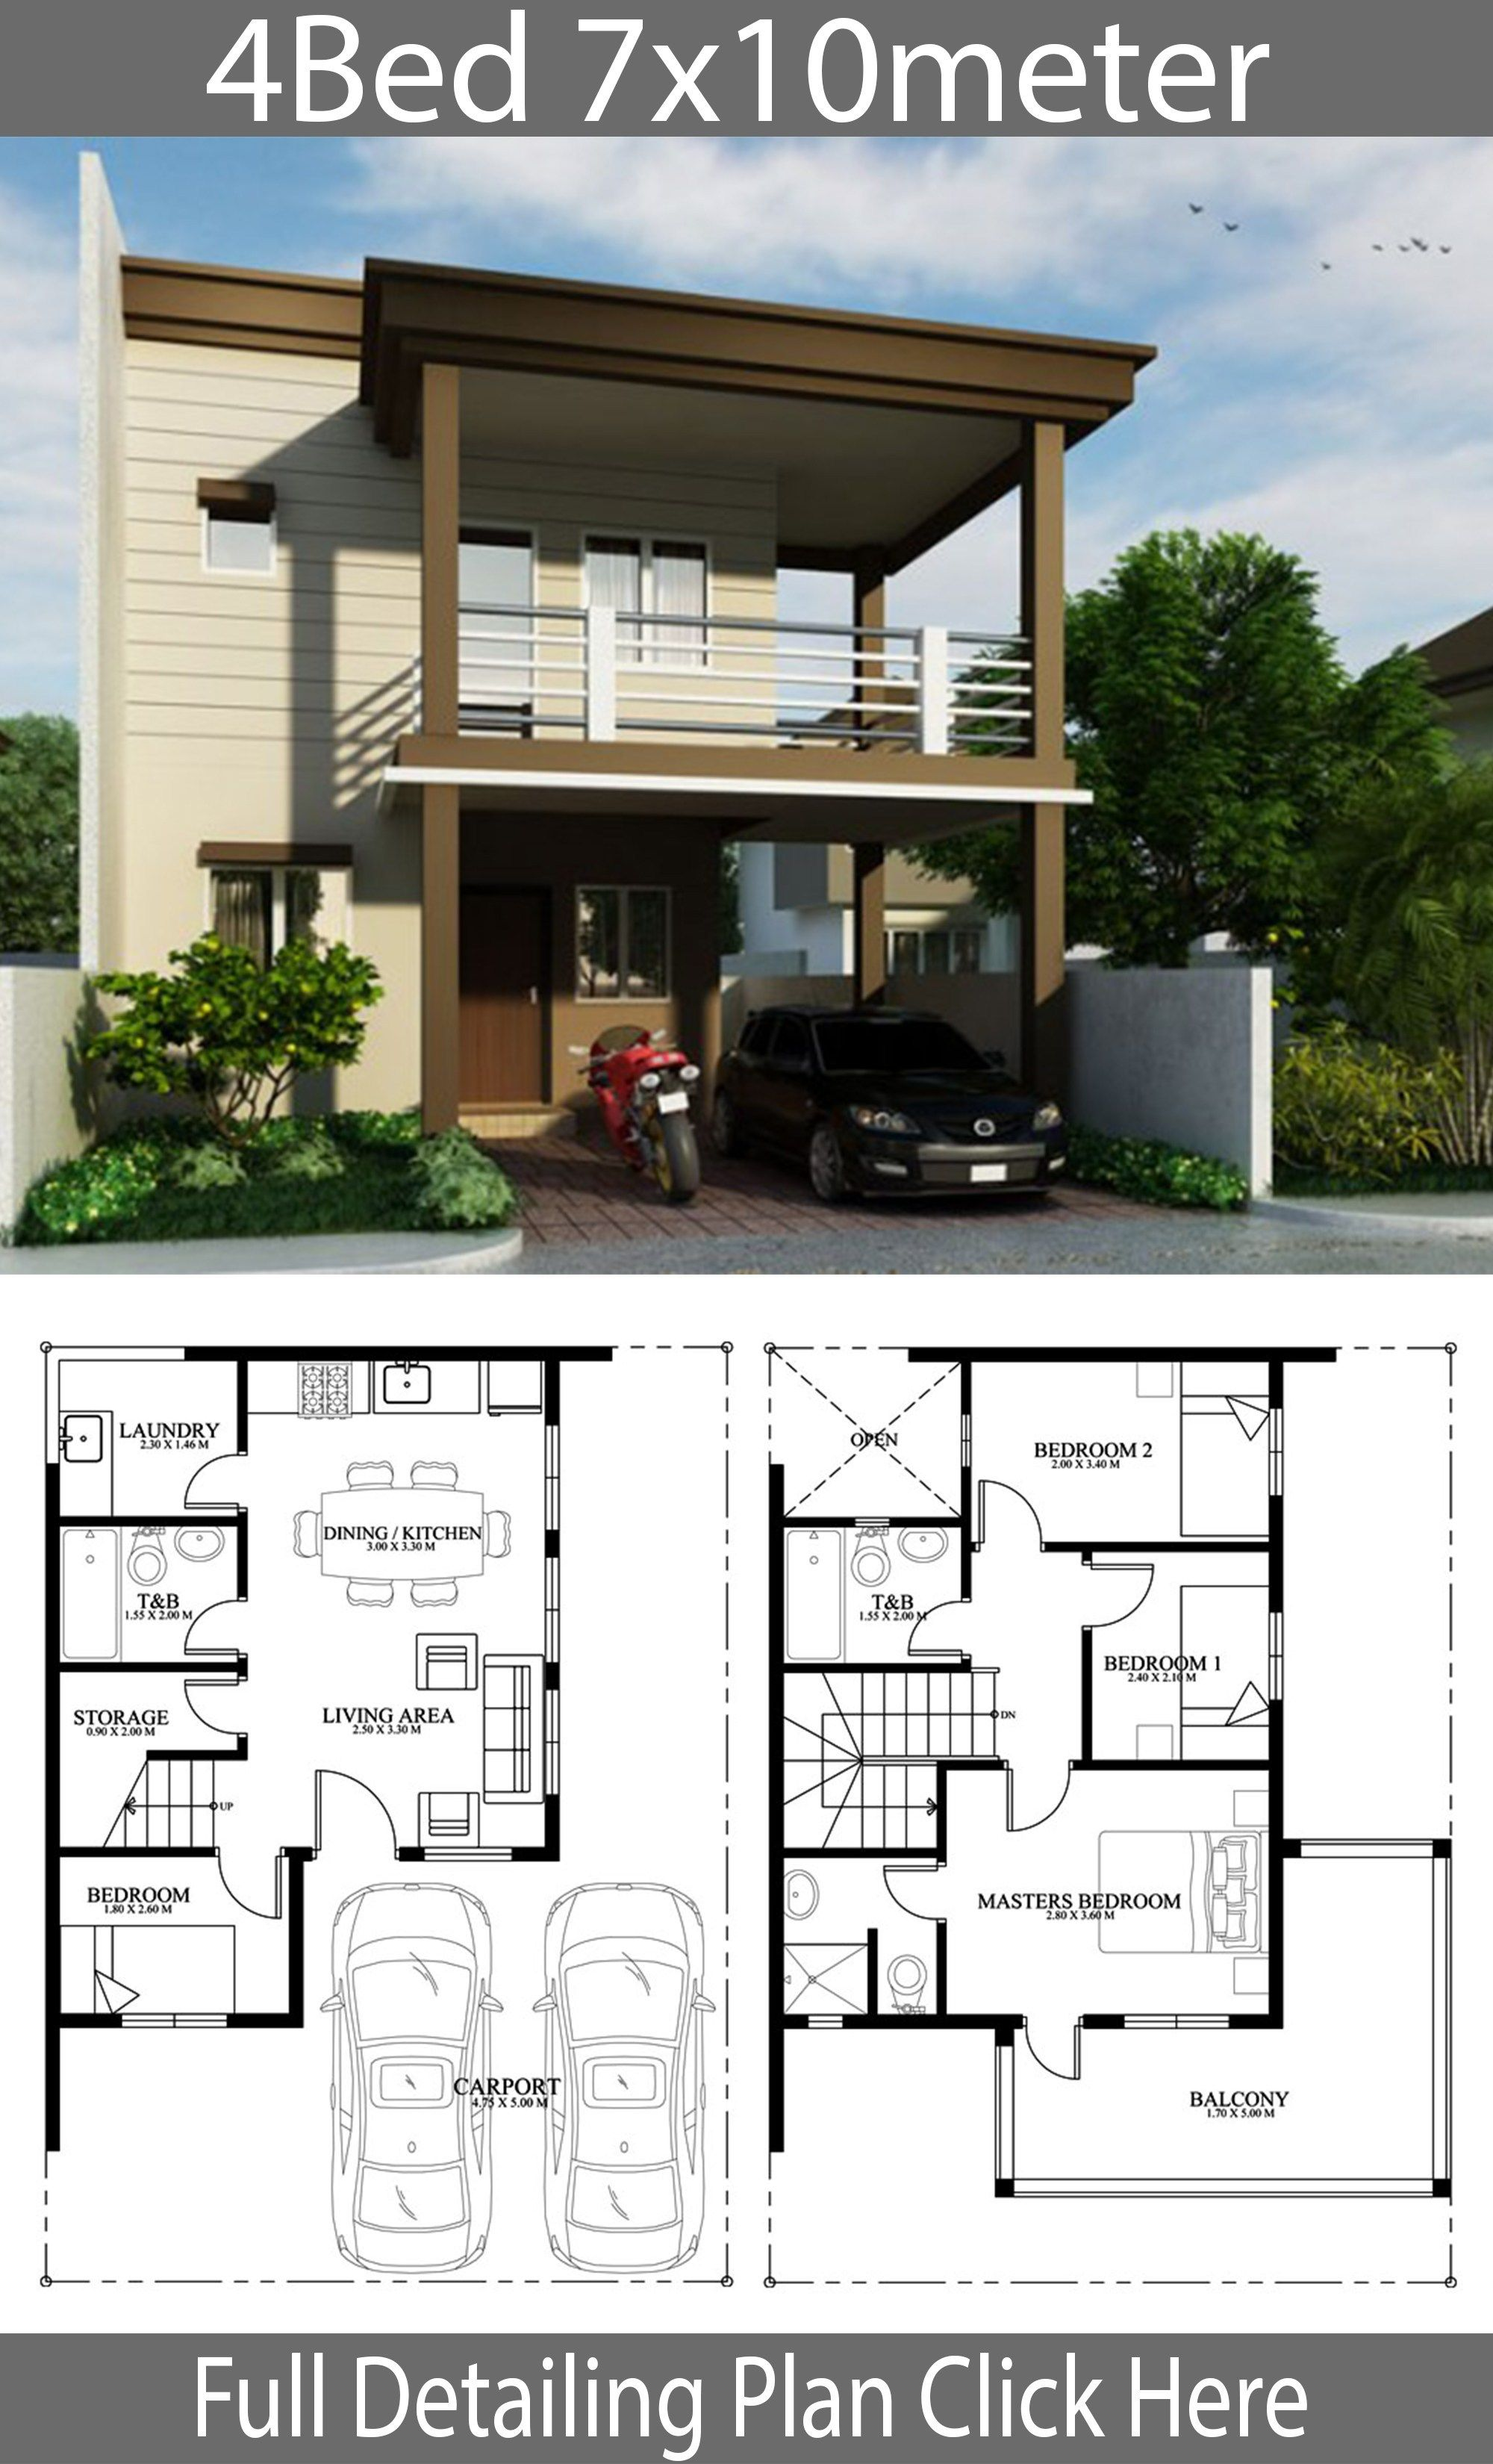 Home Design Plan 7x10m With 4 Bedrooms House Description One Car Parking And Gardenground Level House Designs Exterior Home Design Plans Home Building Design